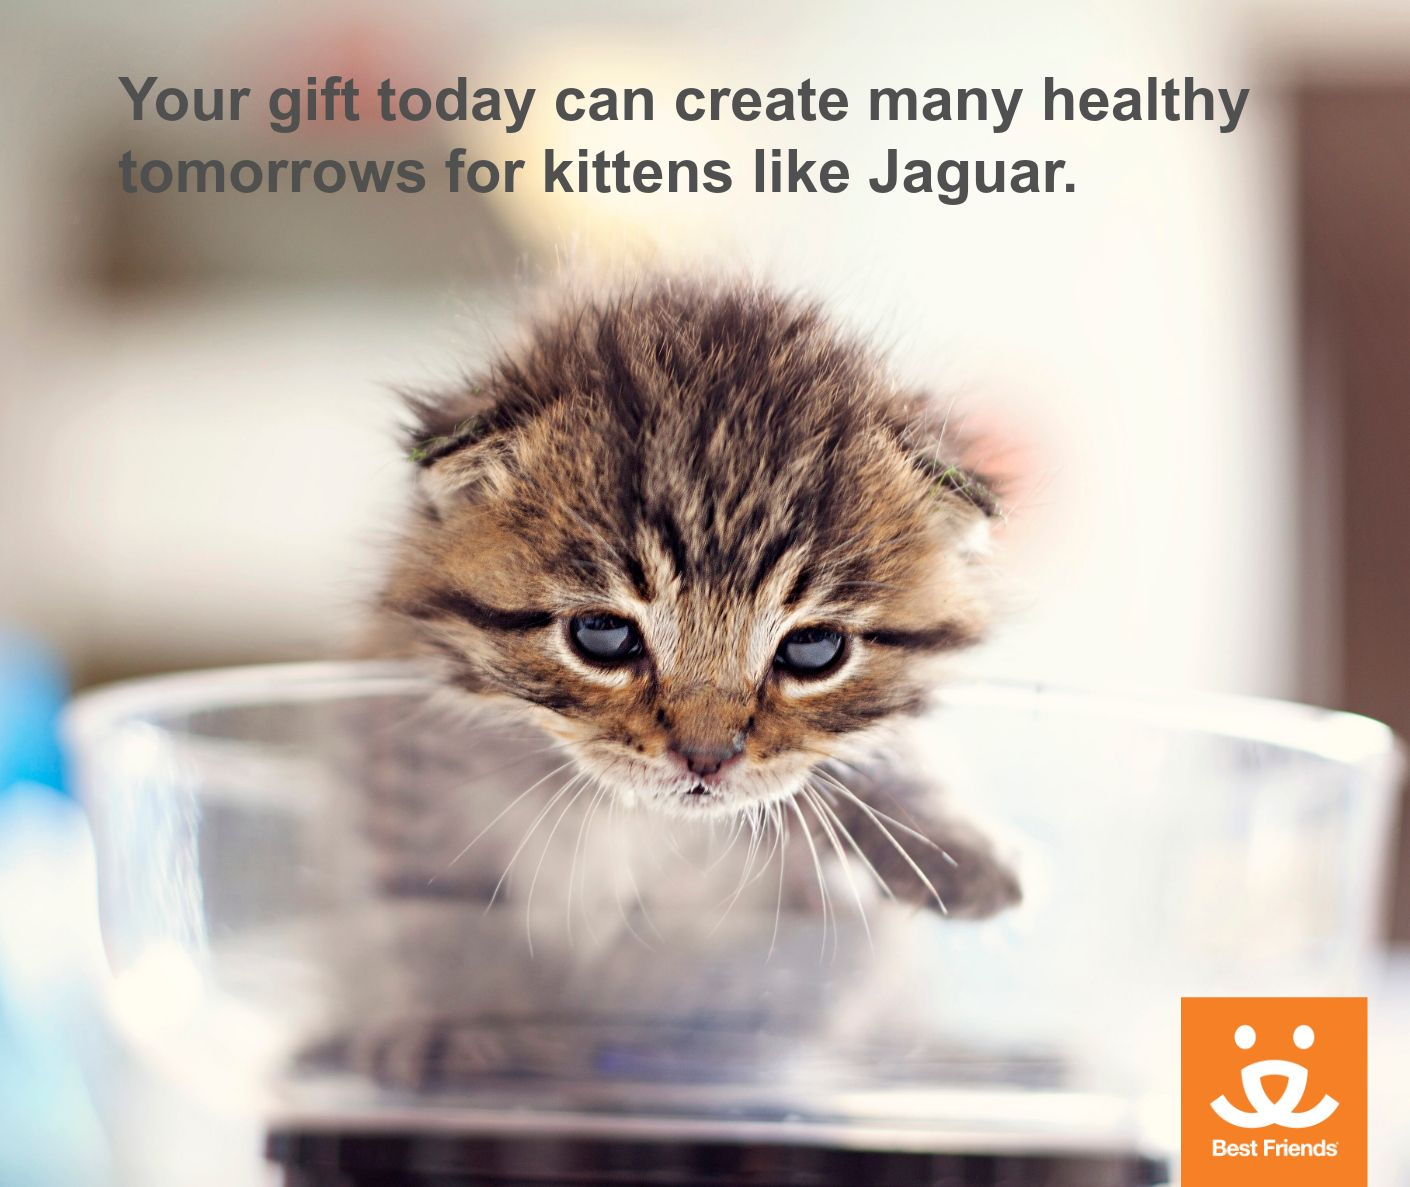 Jaguar Was One Of More Than 1 600 Newborn Kittens Saved Through Our Nurseries This Year Make A Gift Today To Help Others L Animal Society Kittens Best Friends